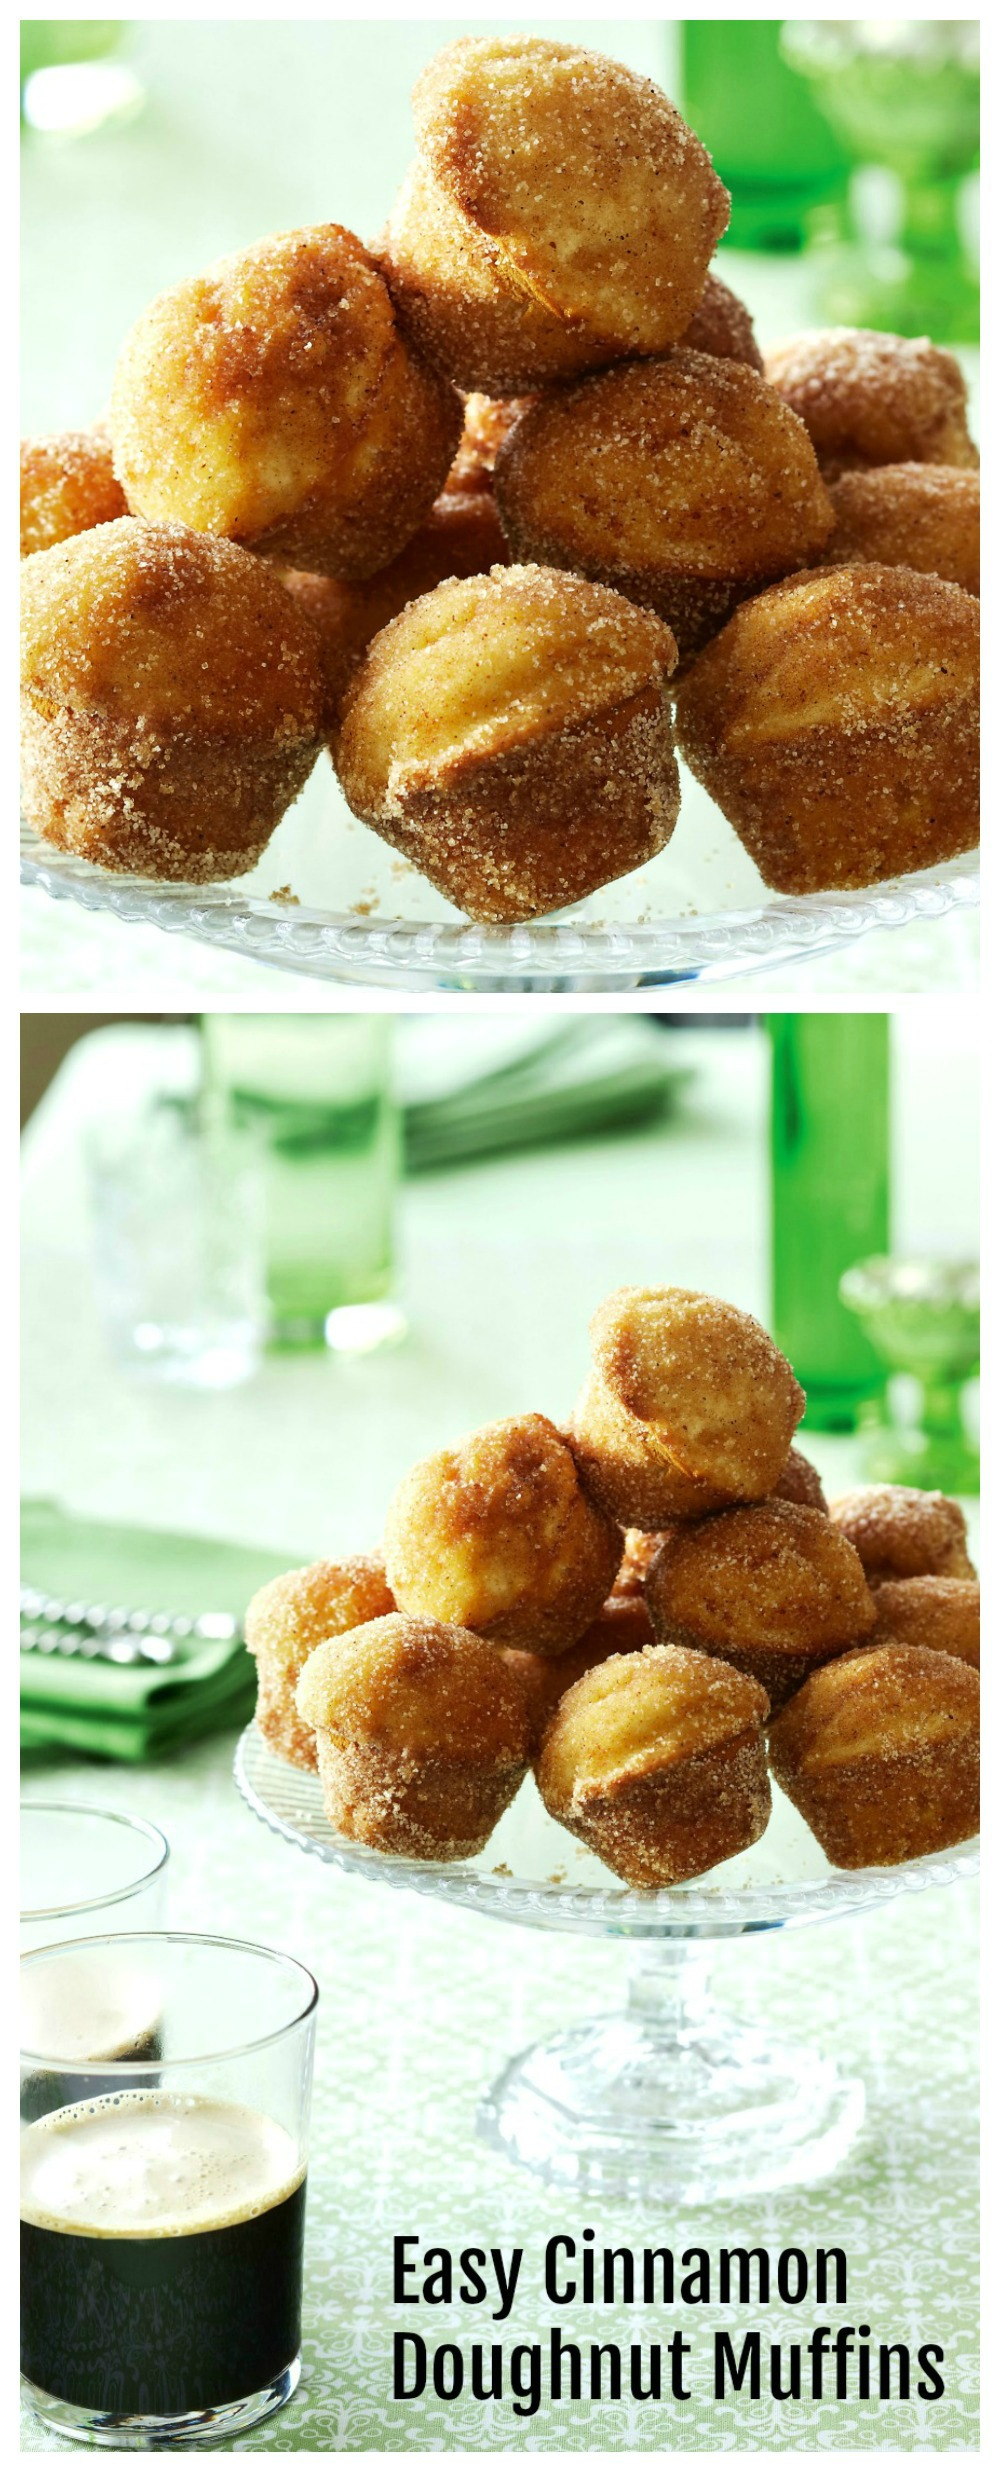 The easiest Cinnamon Doughnut Muffins in the oven on ShockinglyDelicious.com